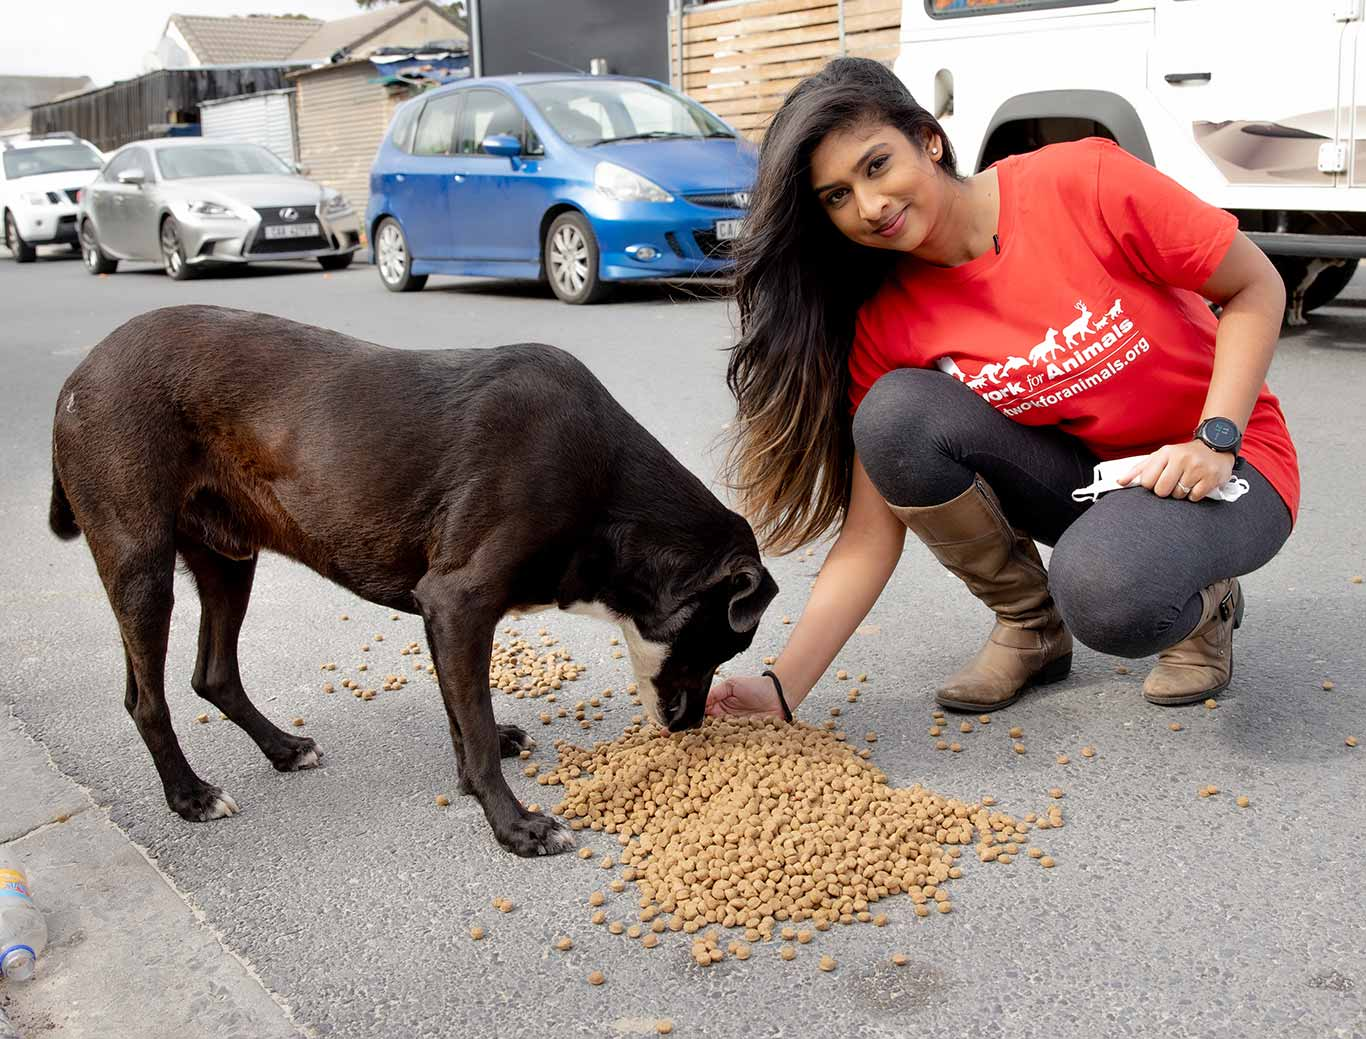 Time is running out to save 365 hungry dogs from starvation in South Africa. 2